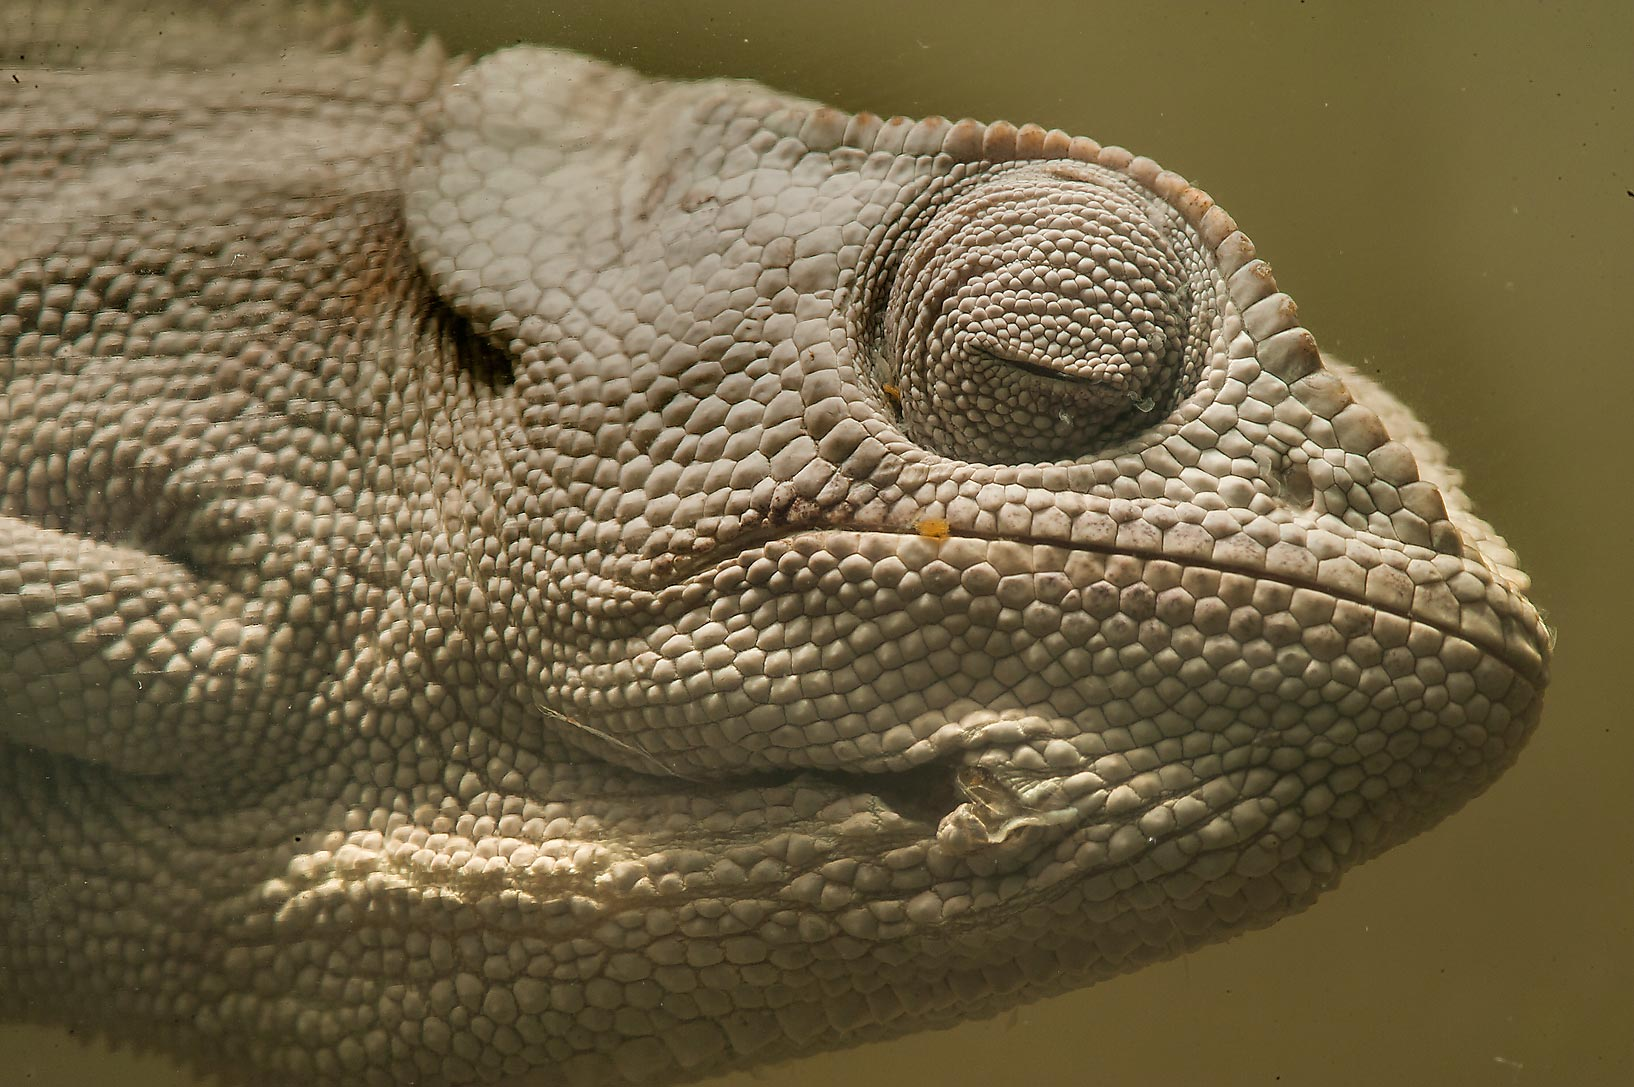 Flap-necked chameleon (Chamaeleo dilepis) in...Museum. St.Petersburg, Russia